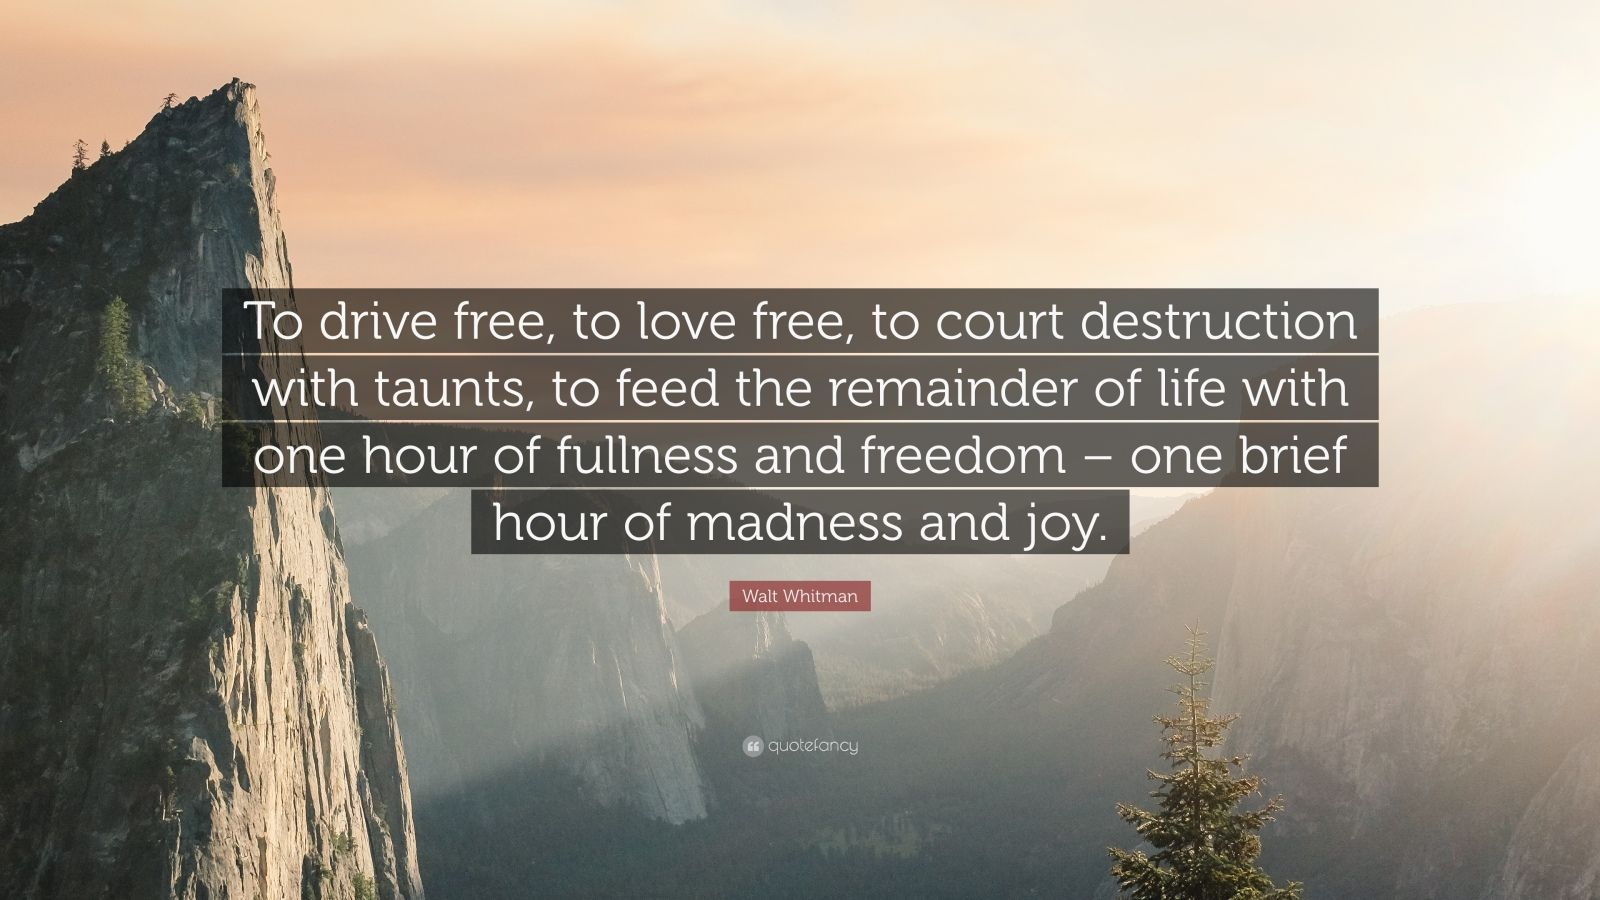 """Walt Whitman Quote: """"To drive free, to love free, to court destruction with taunts, to feed the remainder of life with one hour of fullness and freedom – one brief hour of madness and joy."""""""